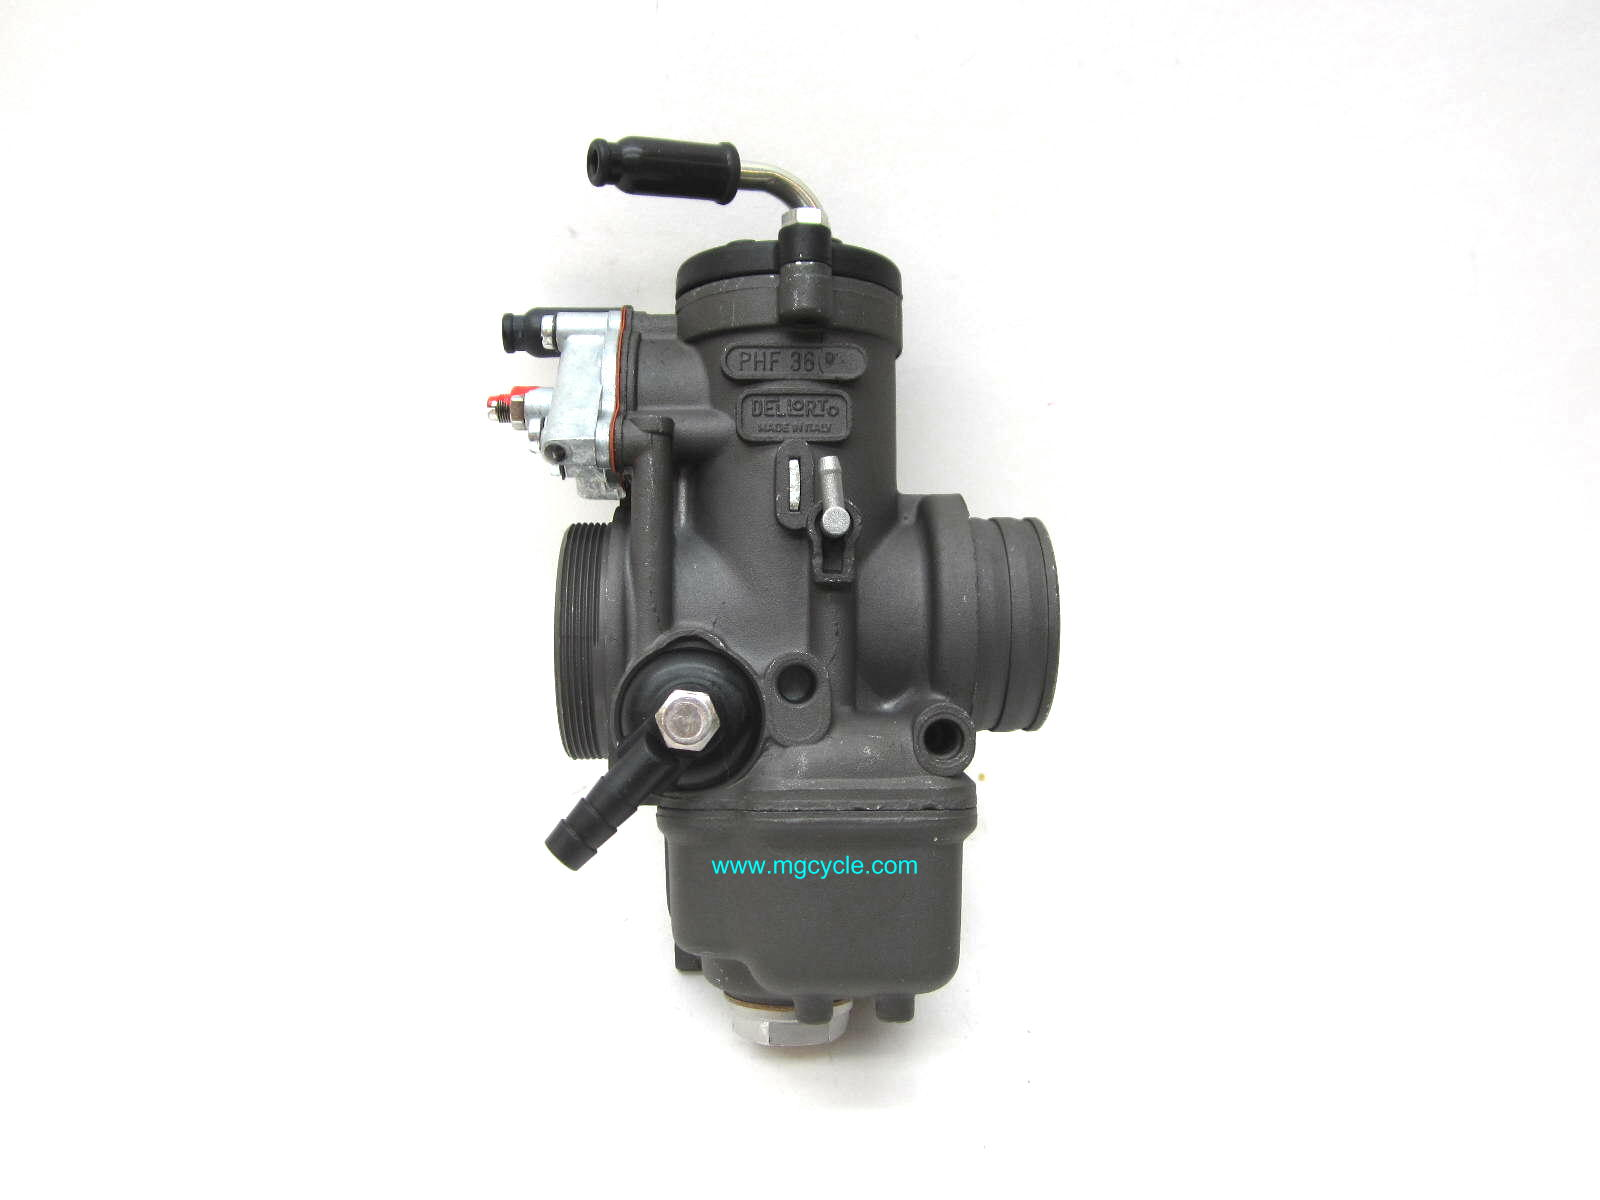 Dellorto PHF36 carburator, as on SP3, left side